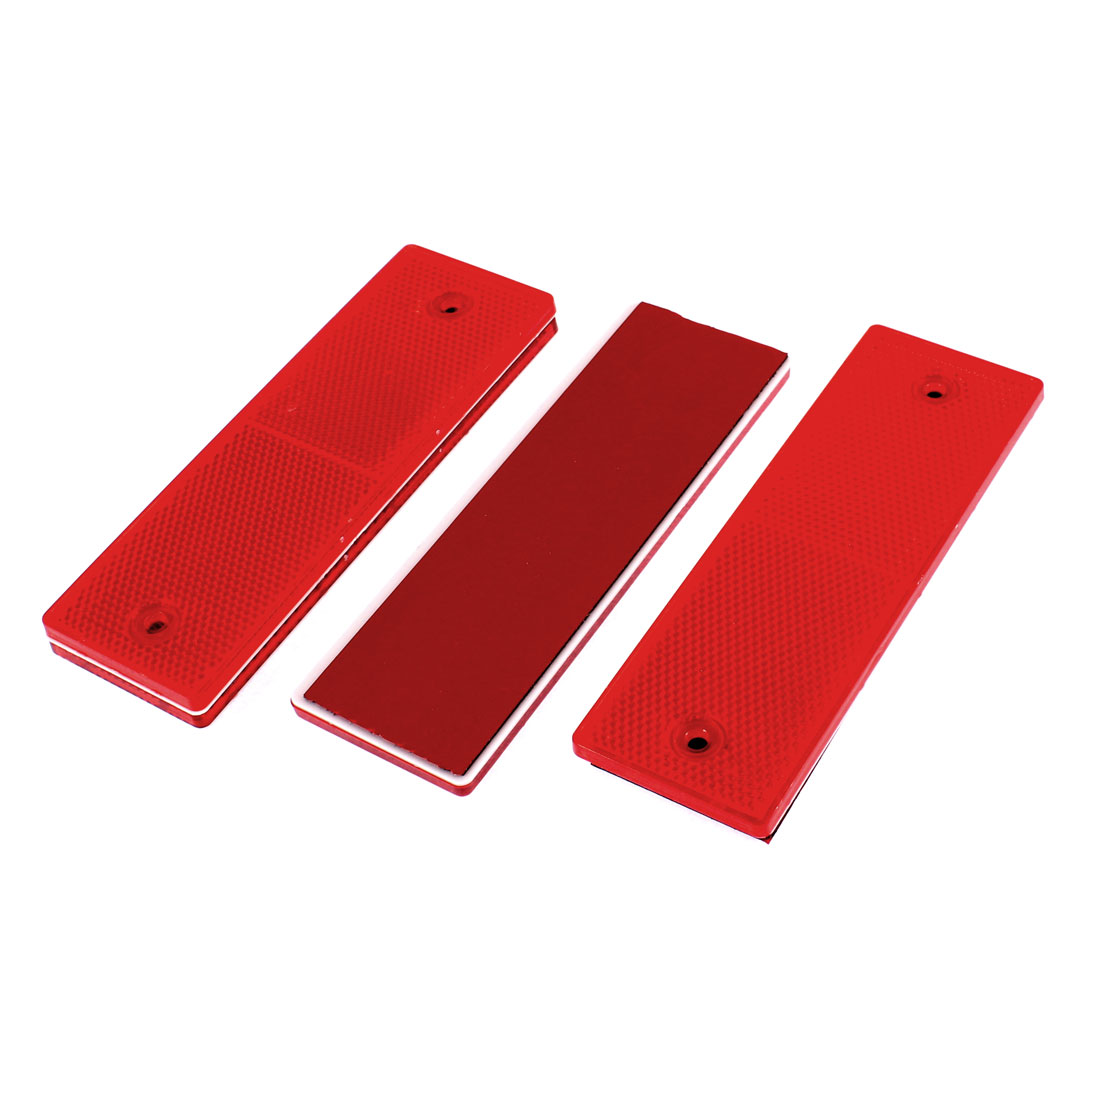 Car Truck Safety Reflective Warning Self-adhesive Mounting Plate Stickers Red 4pcs